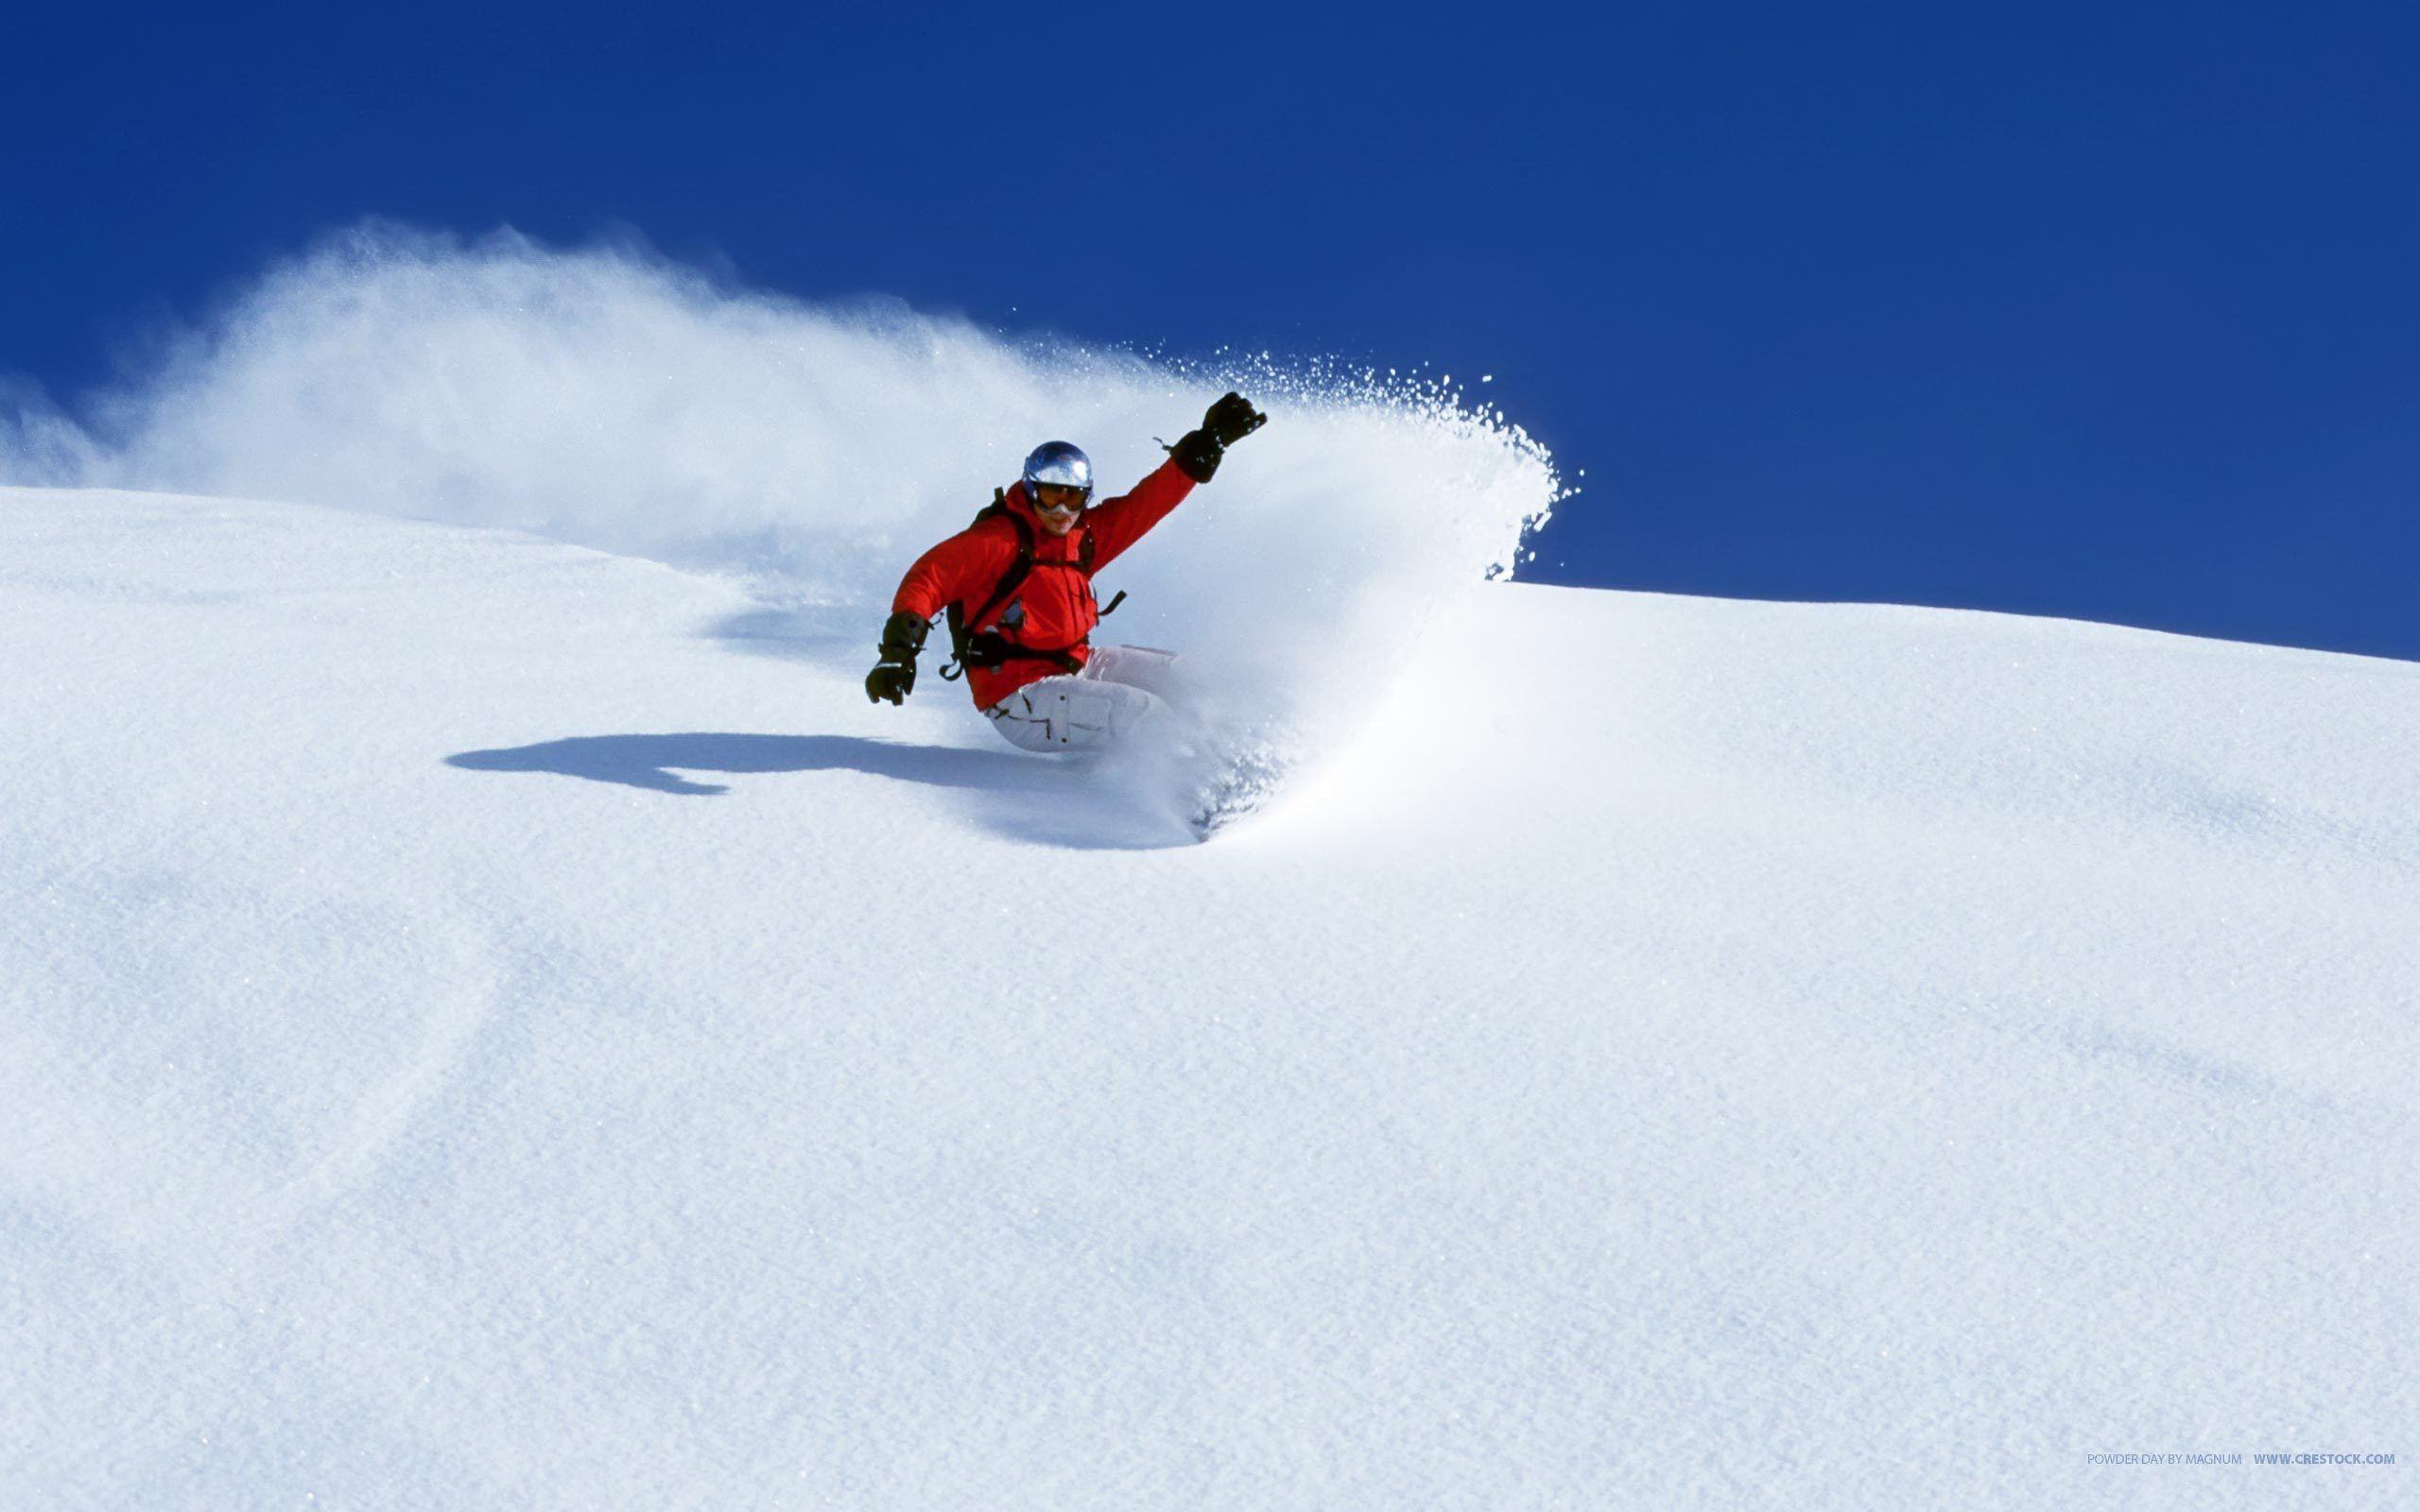 Snowboarding Wallpapers - Full HD wallpaper search